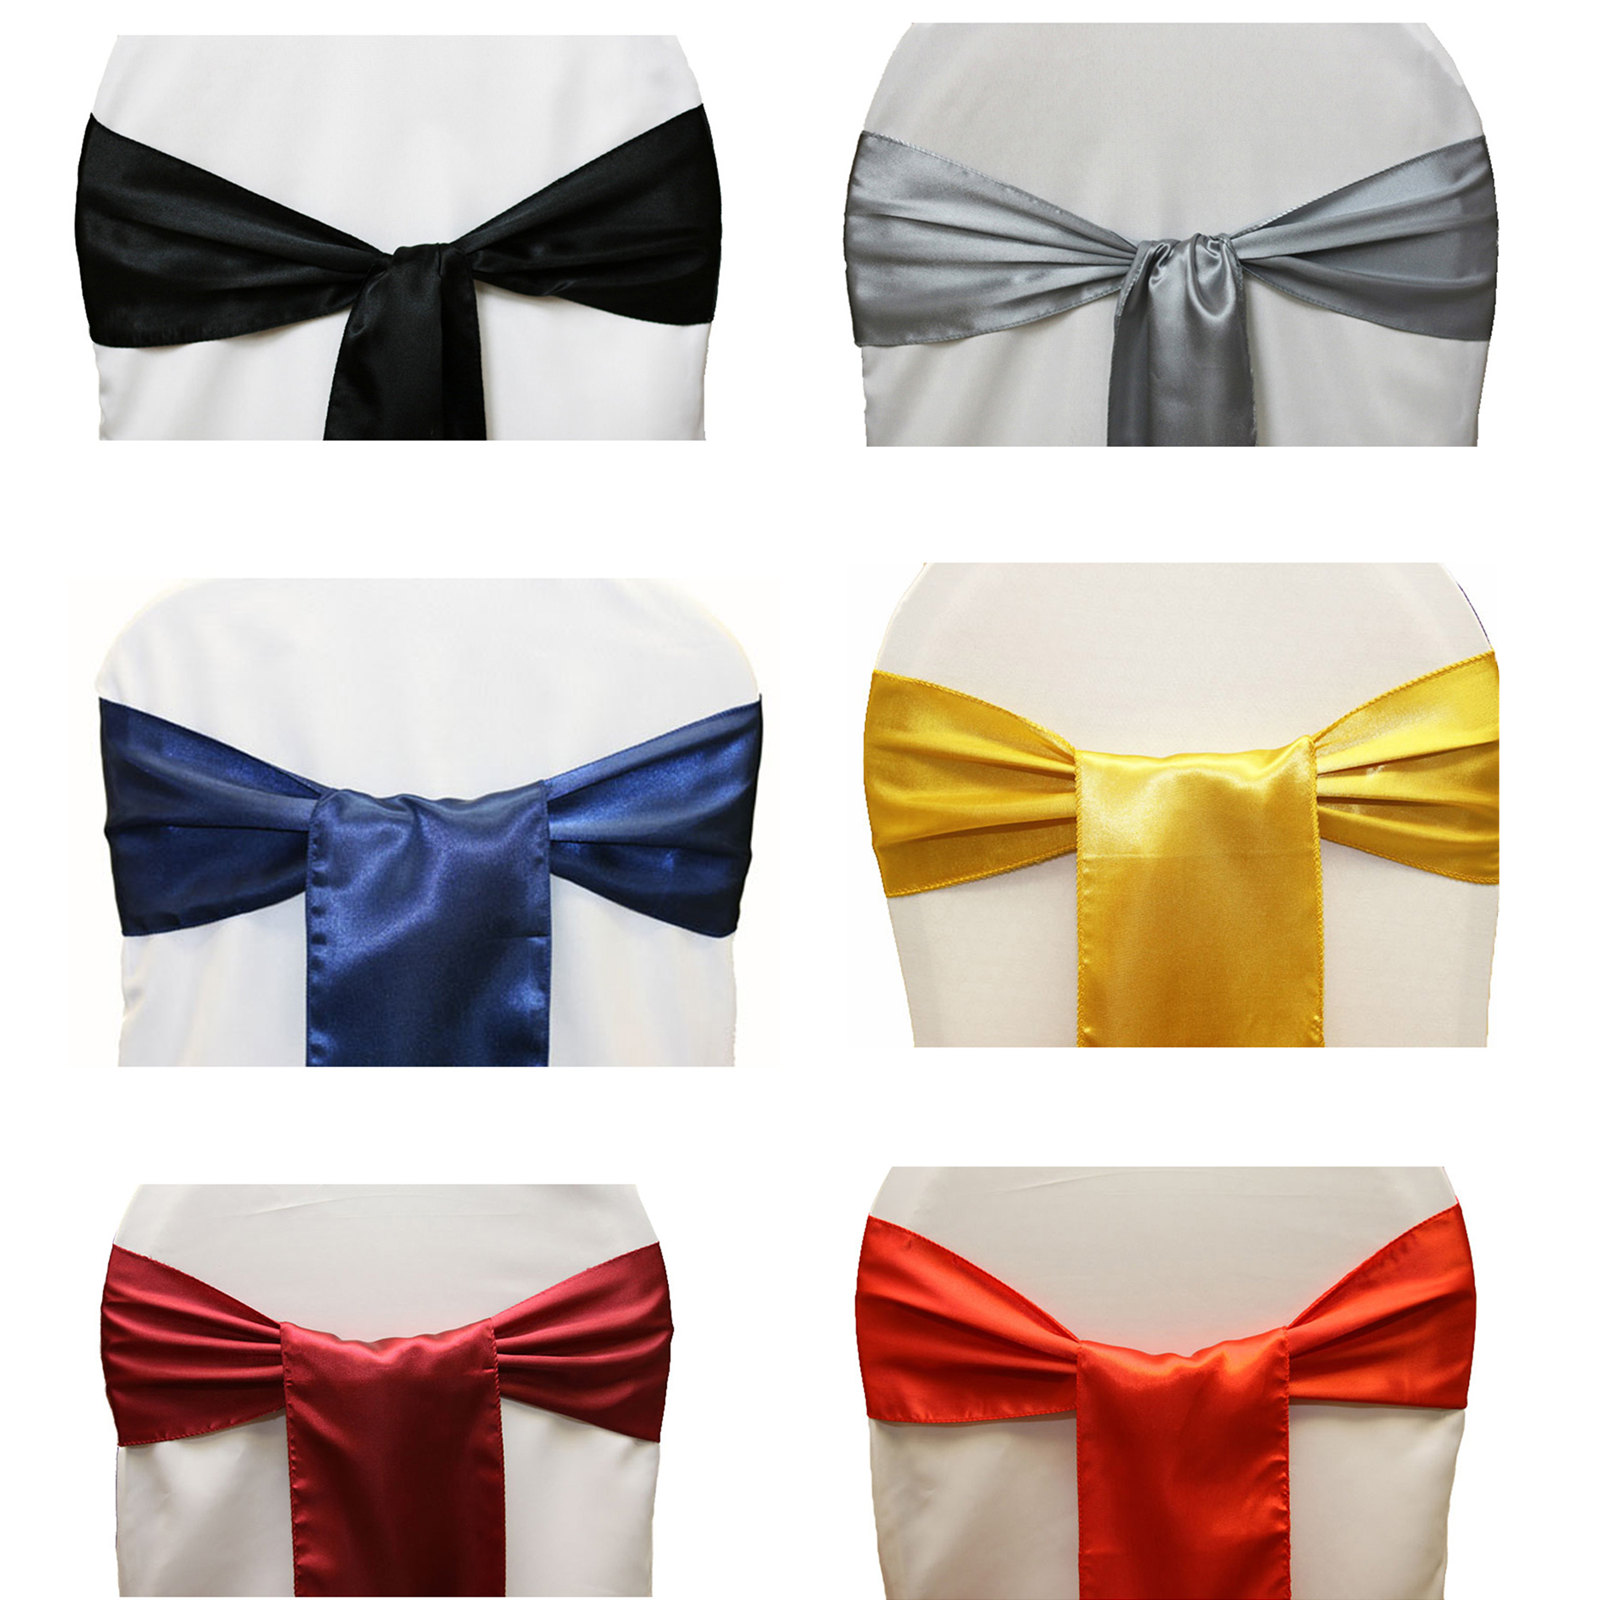 50pcs Satin Chair Sashs Satin Chair Covers Bows Home Wedding Party Favors Decorations For Hotel Banquet